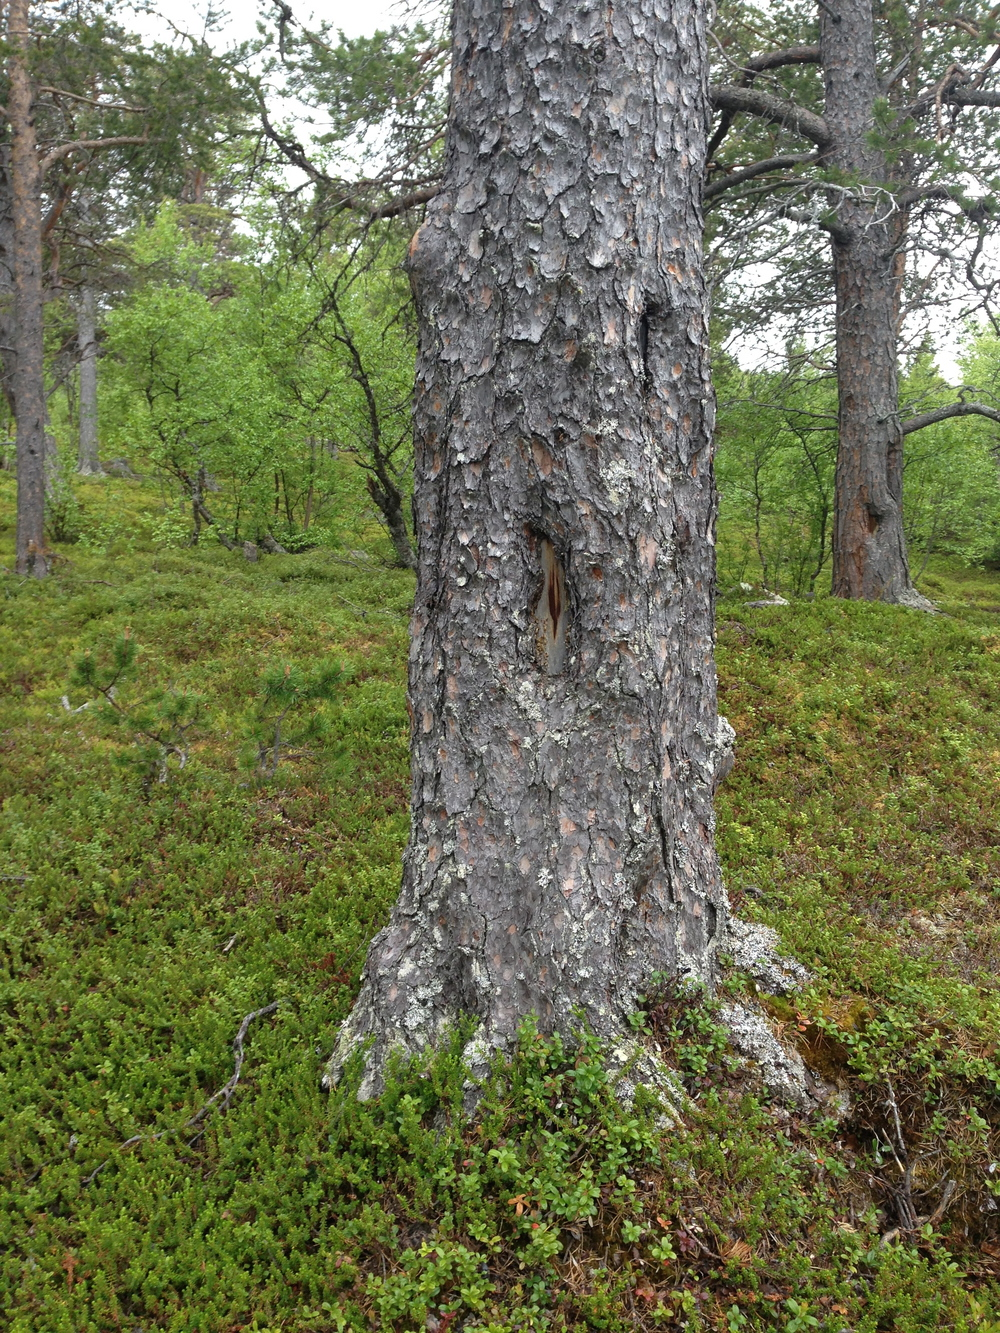 A pine tree with evidence of bark regrowth over an old 'window-pane', in northern Sweden.